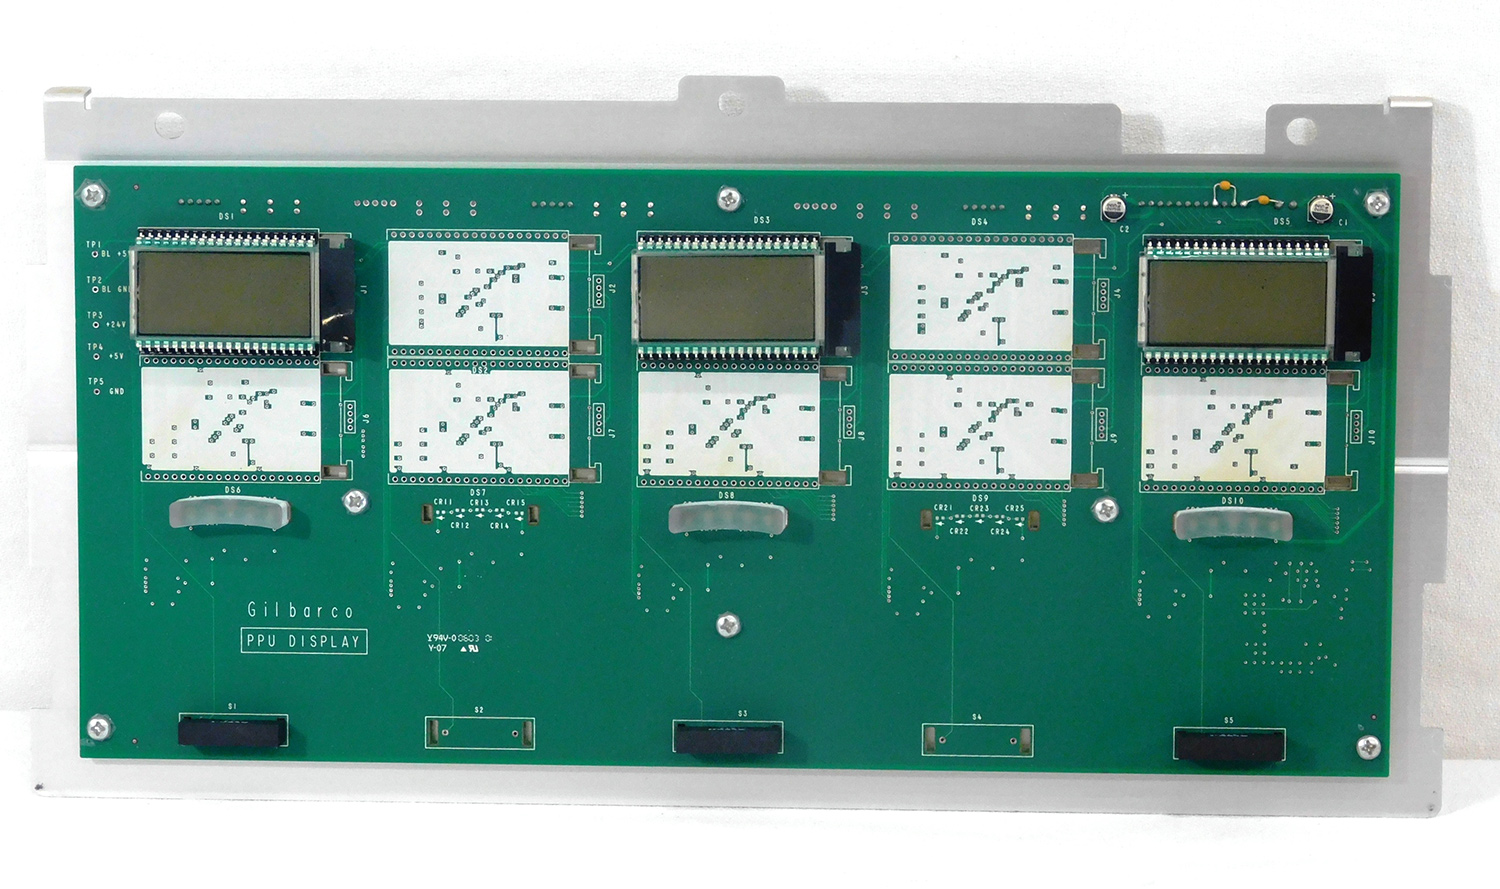 M06194A001 PPU Display